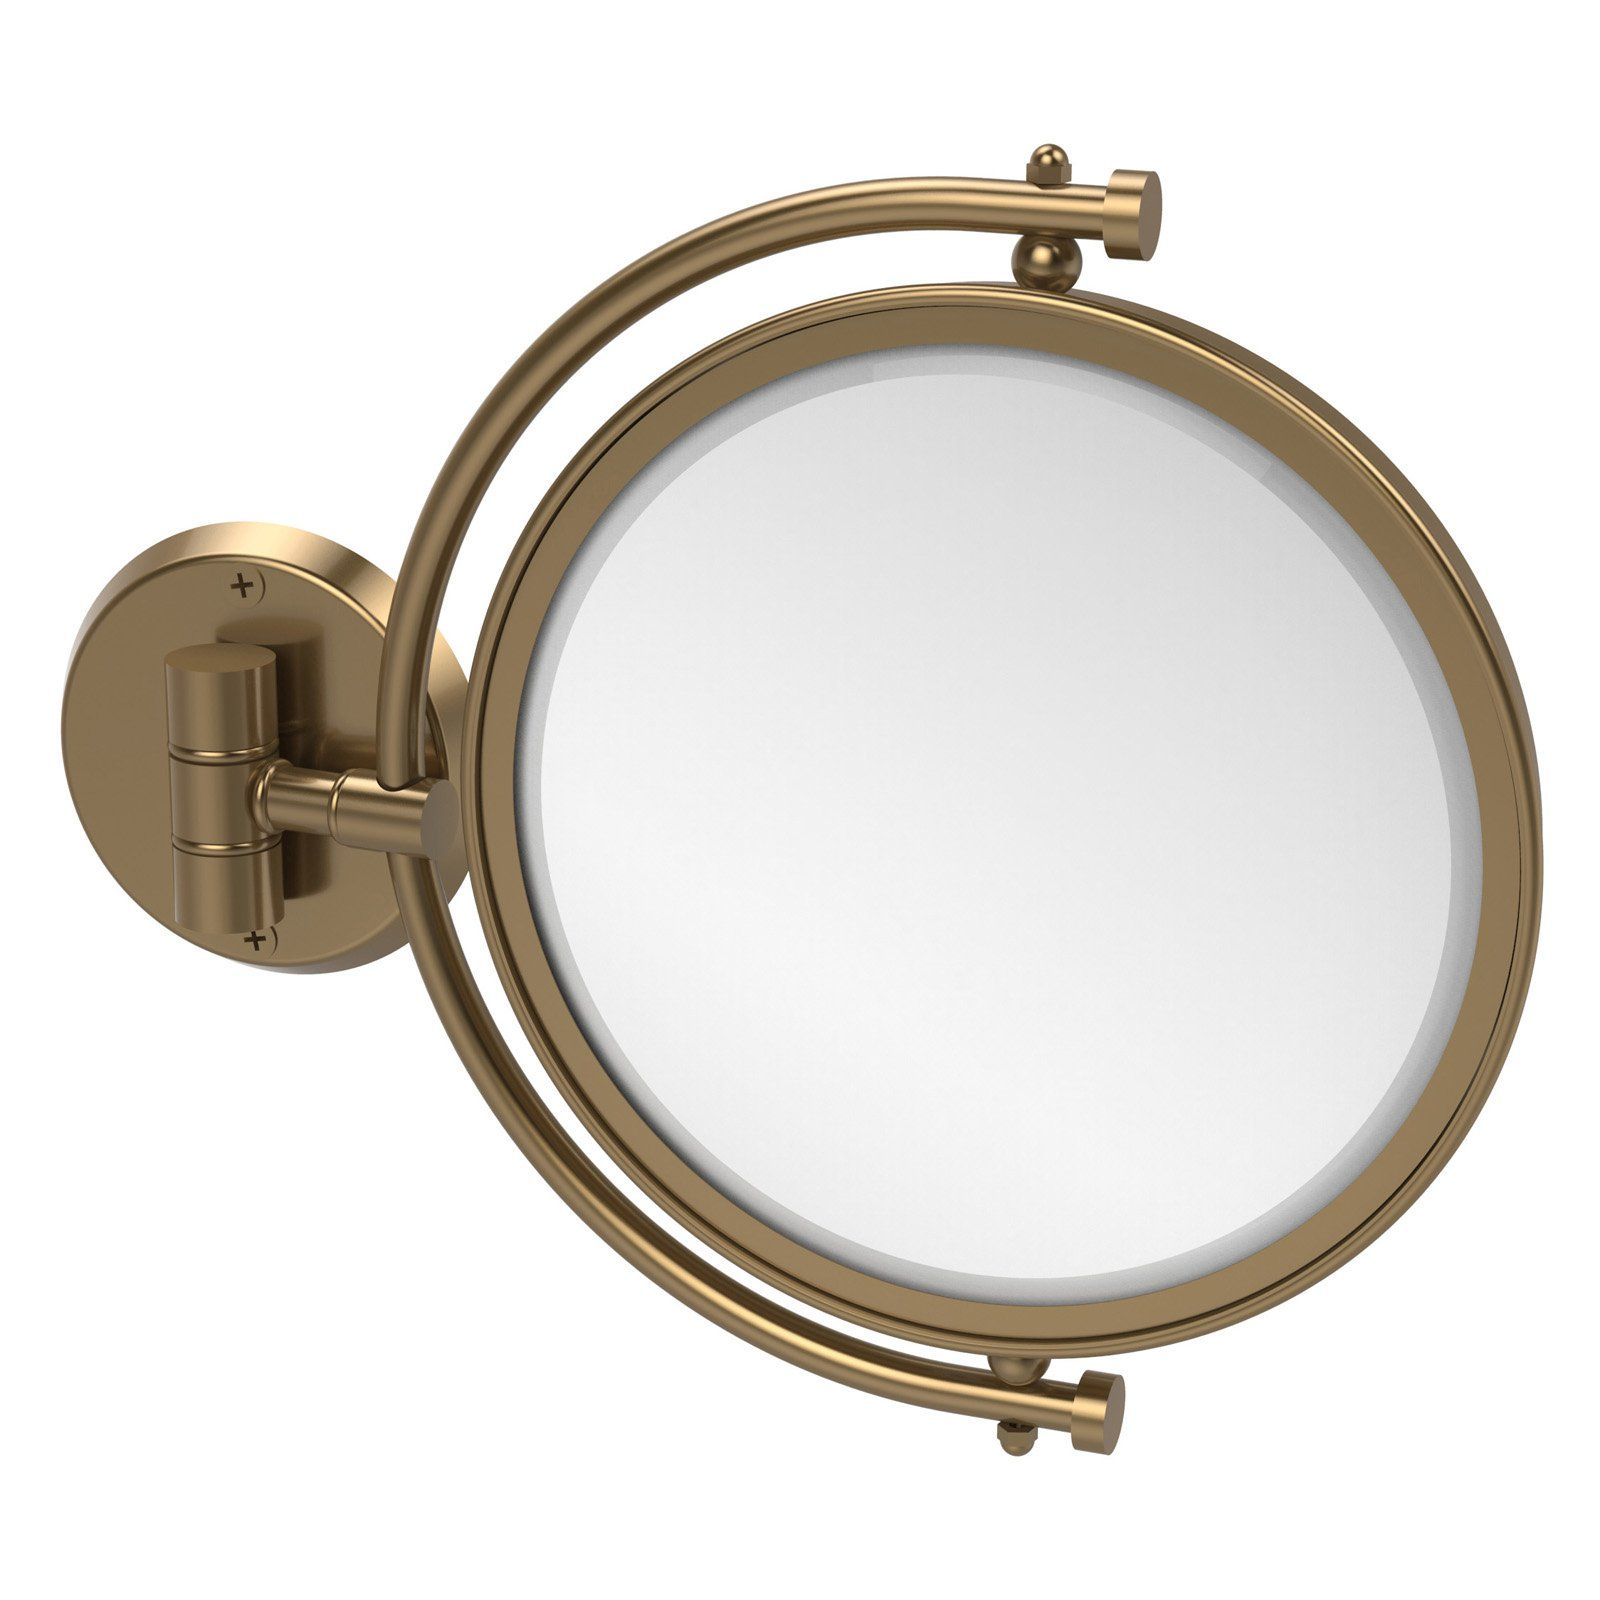 Allied Brass Wall Mounted Makeup Mirror with 5X